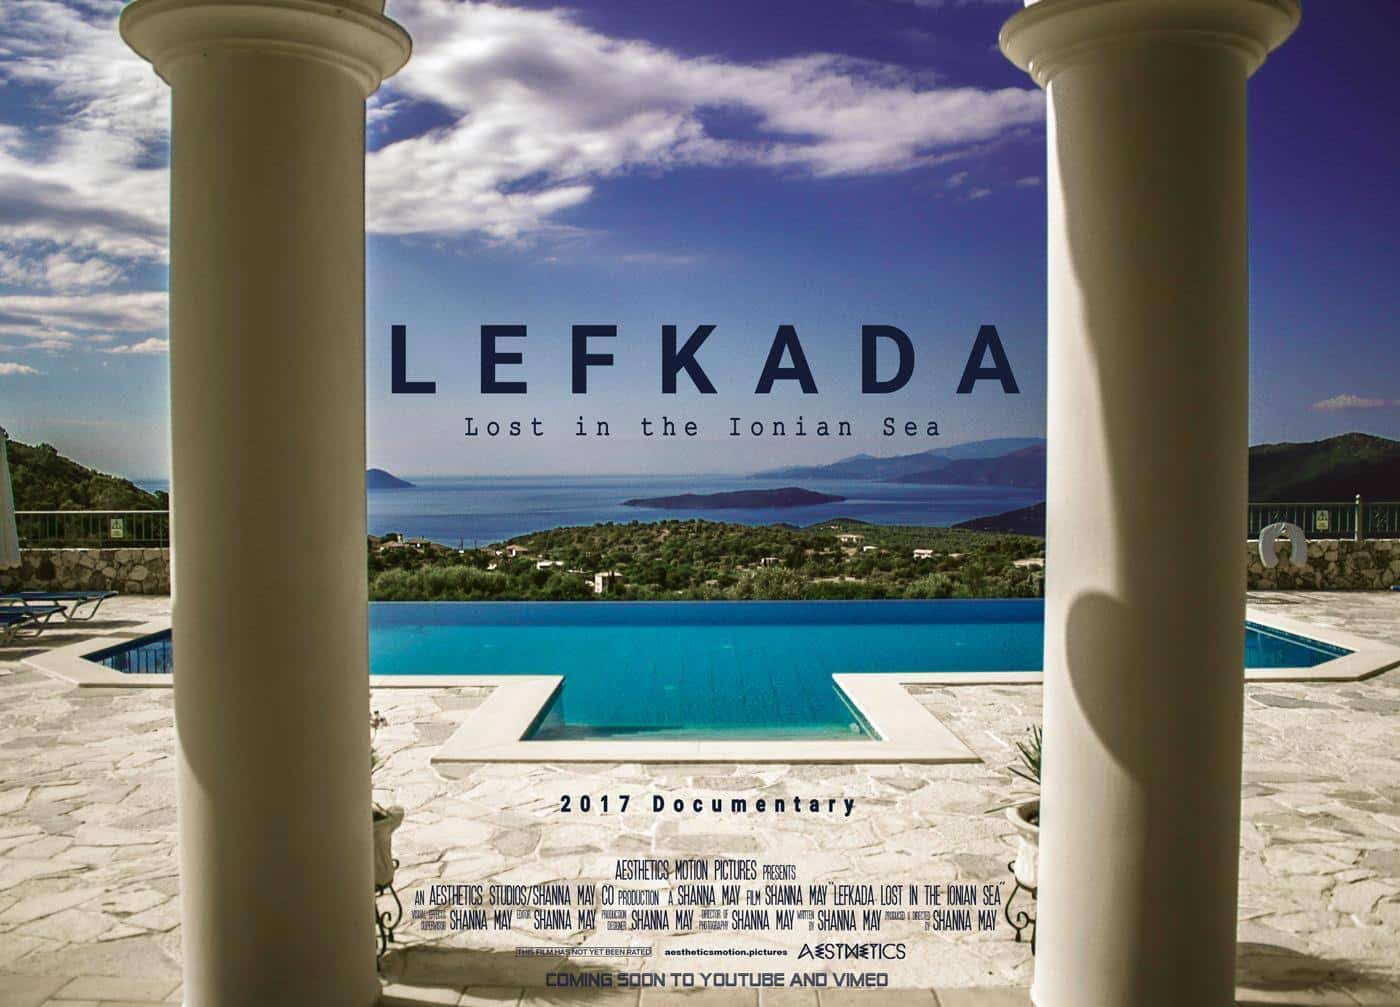 Lefkada lost in the ionian sea documentary shanna may aesthetics motion pictures